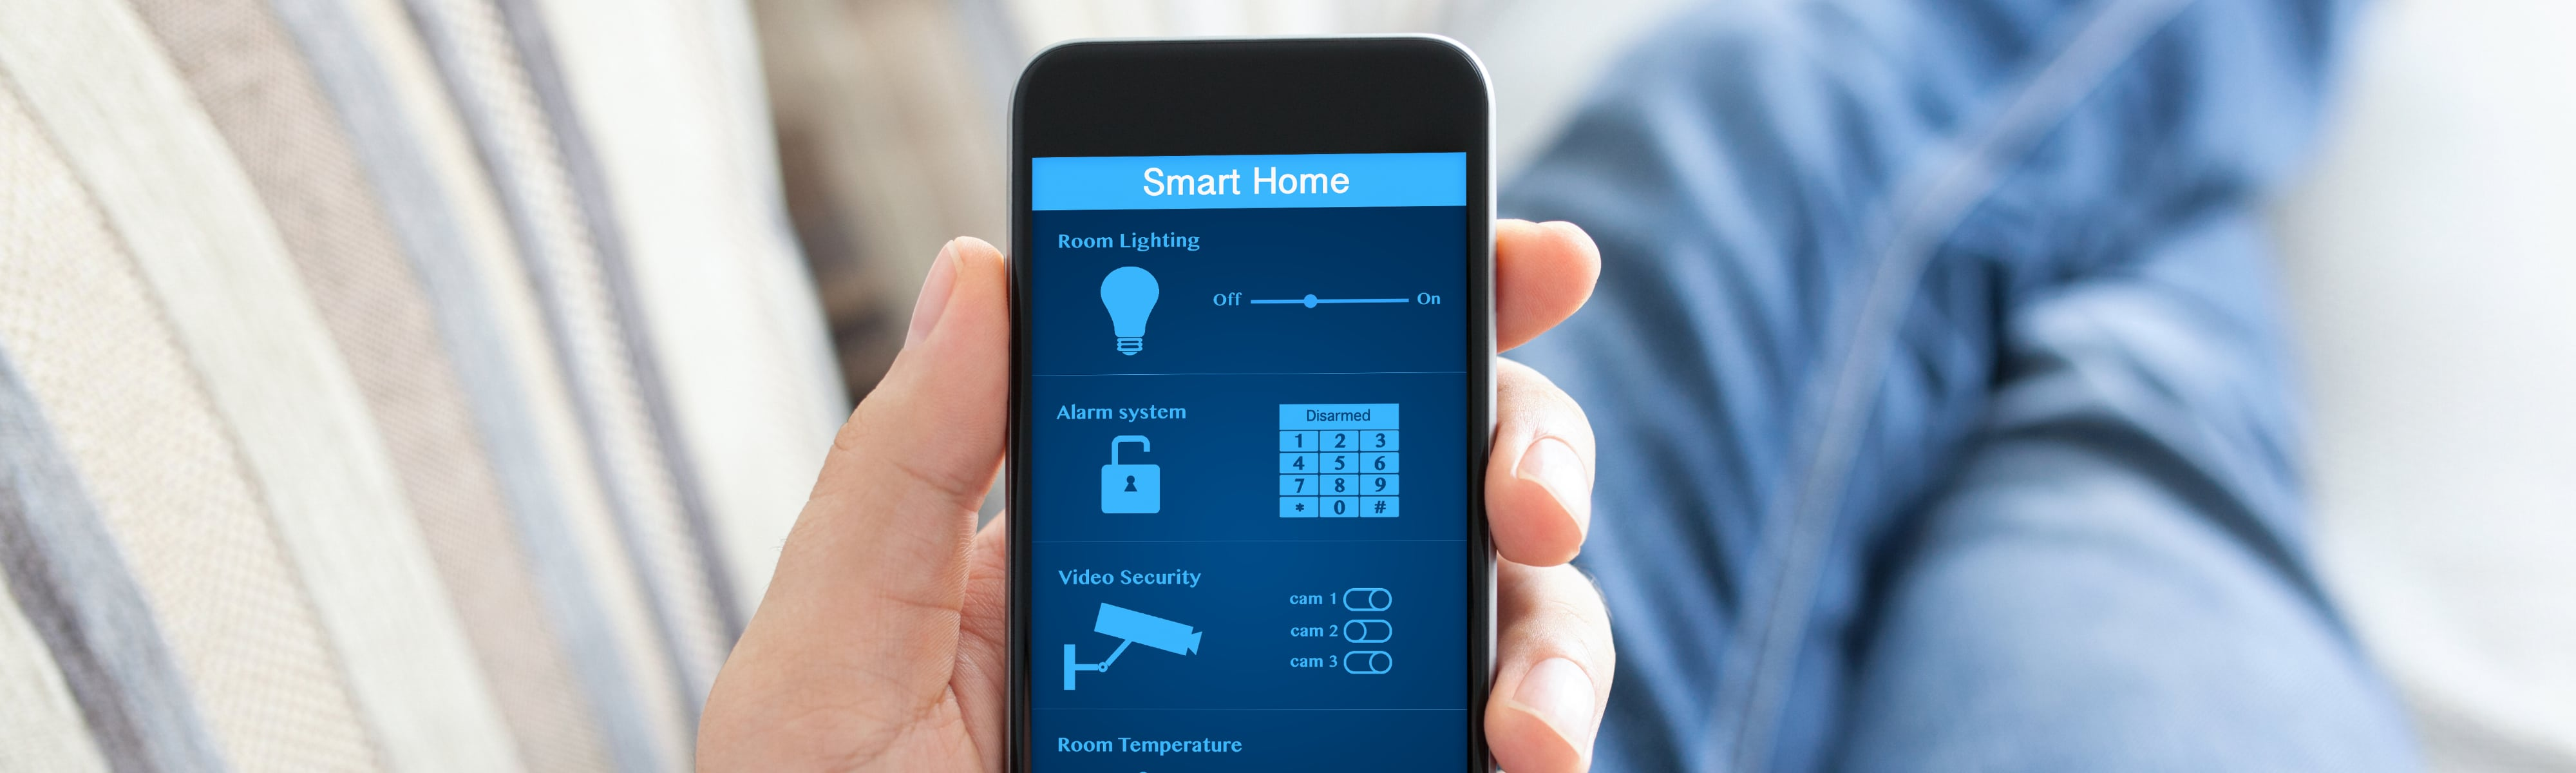 Smart home automation on a smartphone.